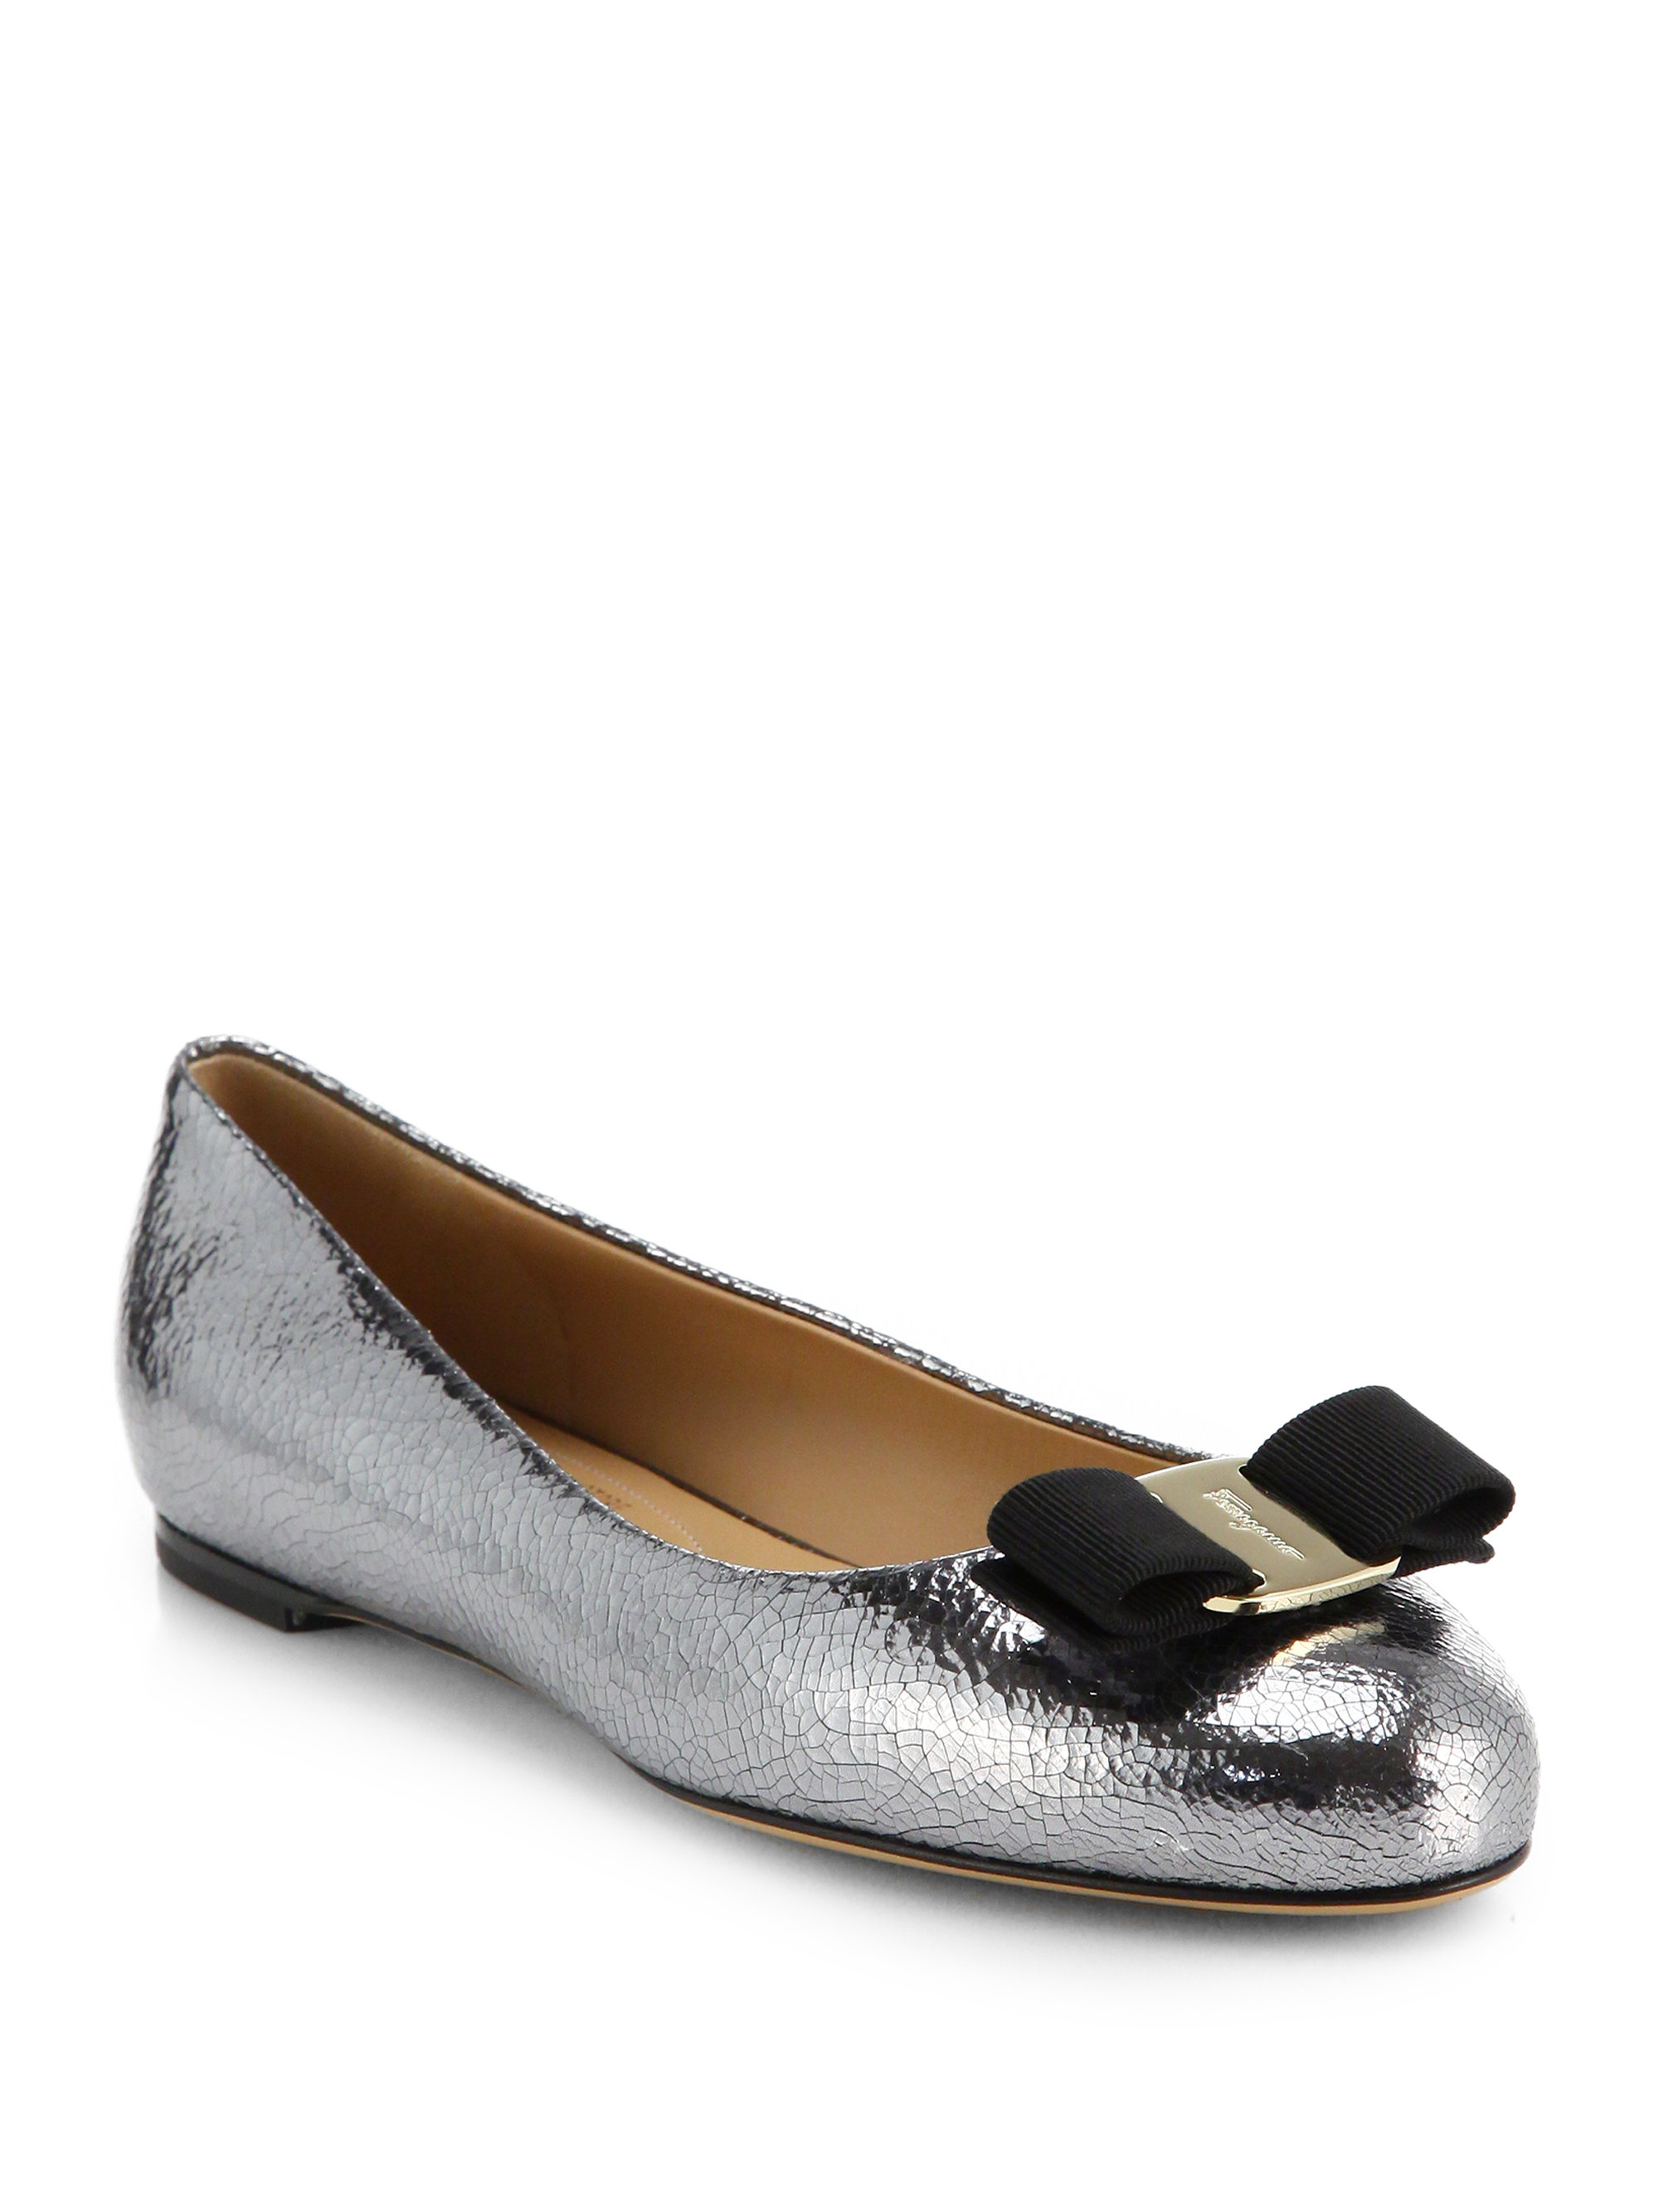 Lyst Ferragamo Varina Crackled Metallic Leather Bow